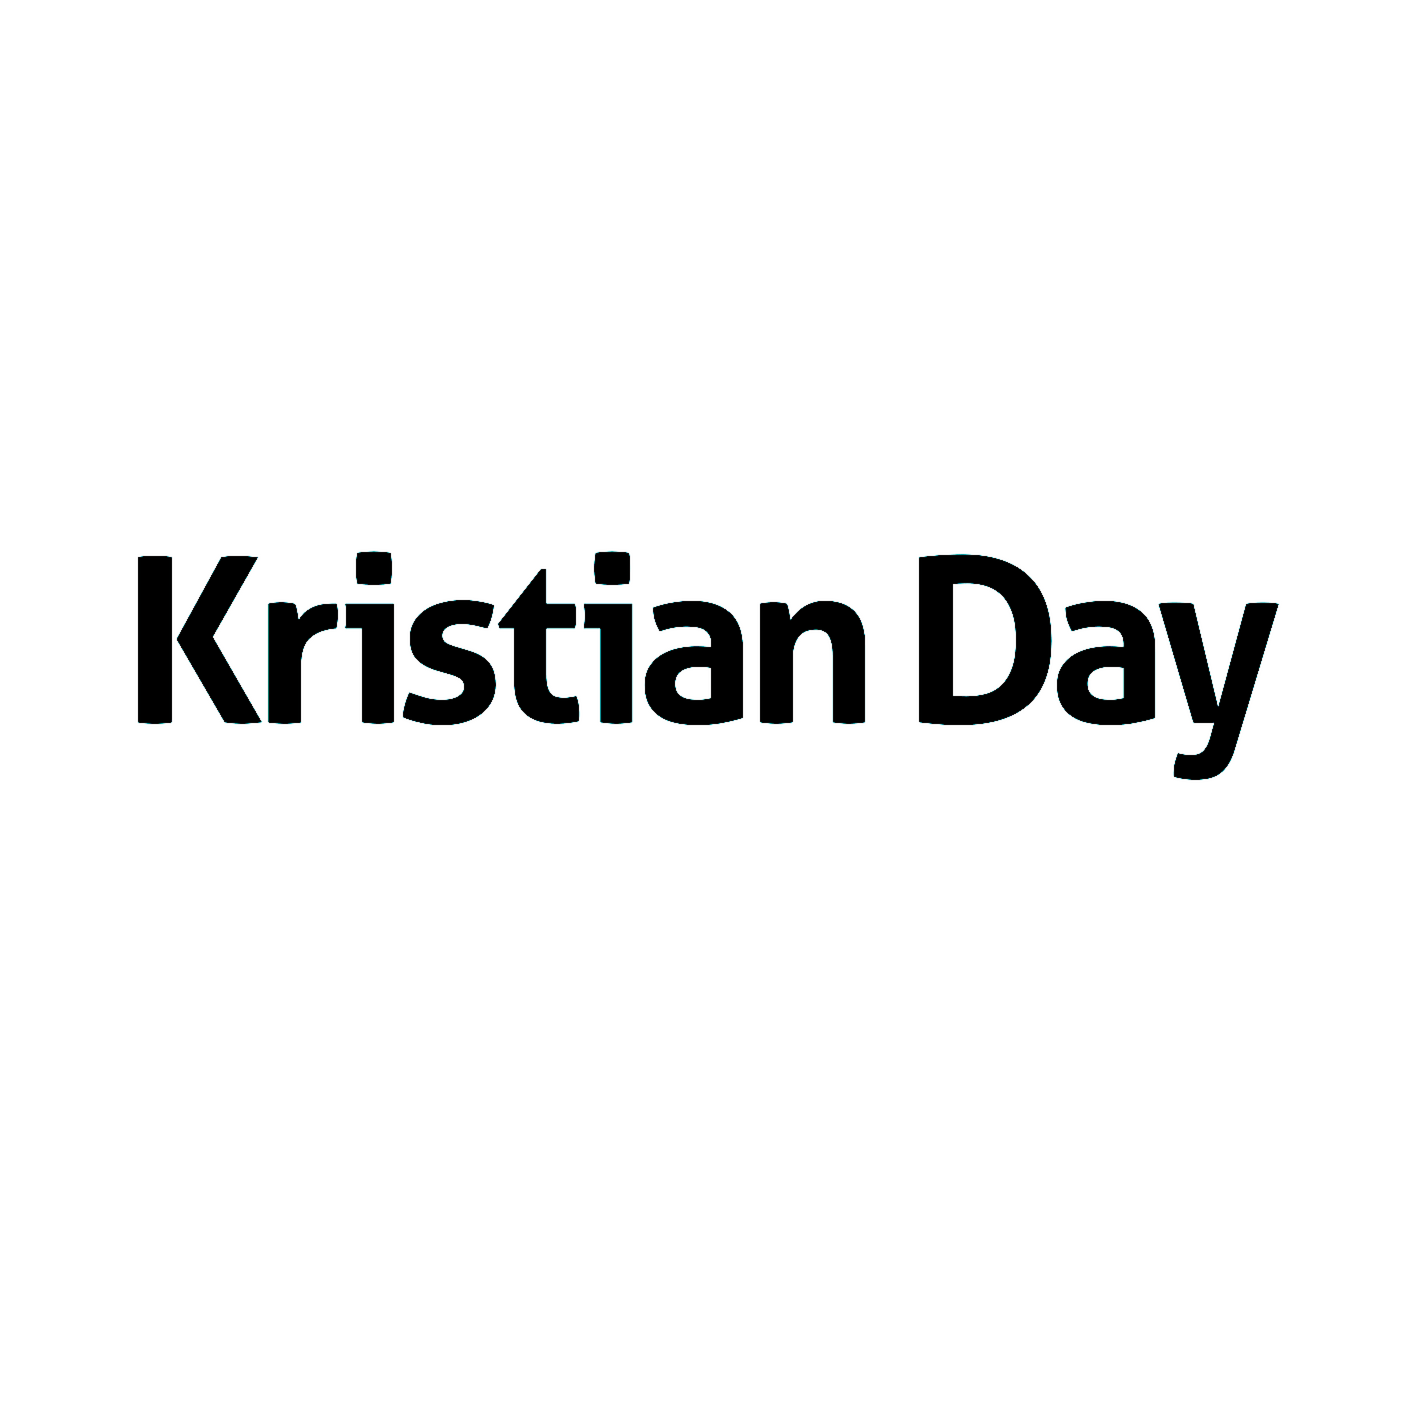 Kristian Day